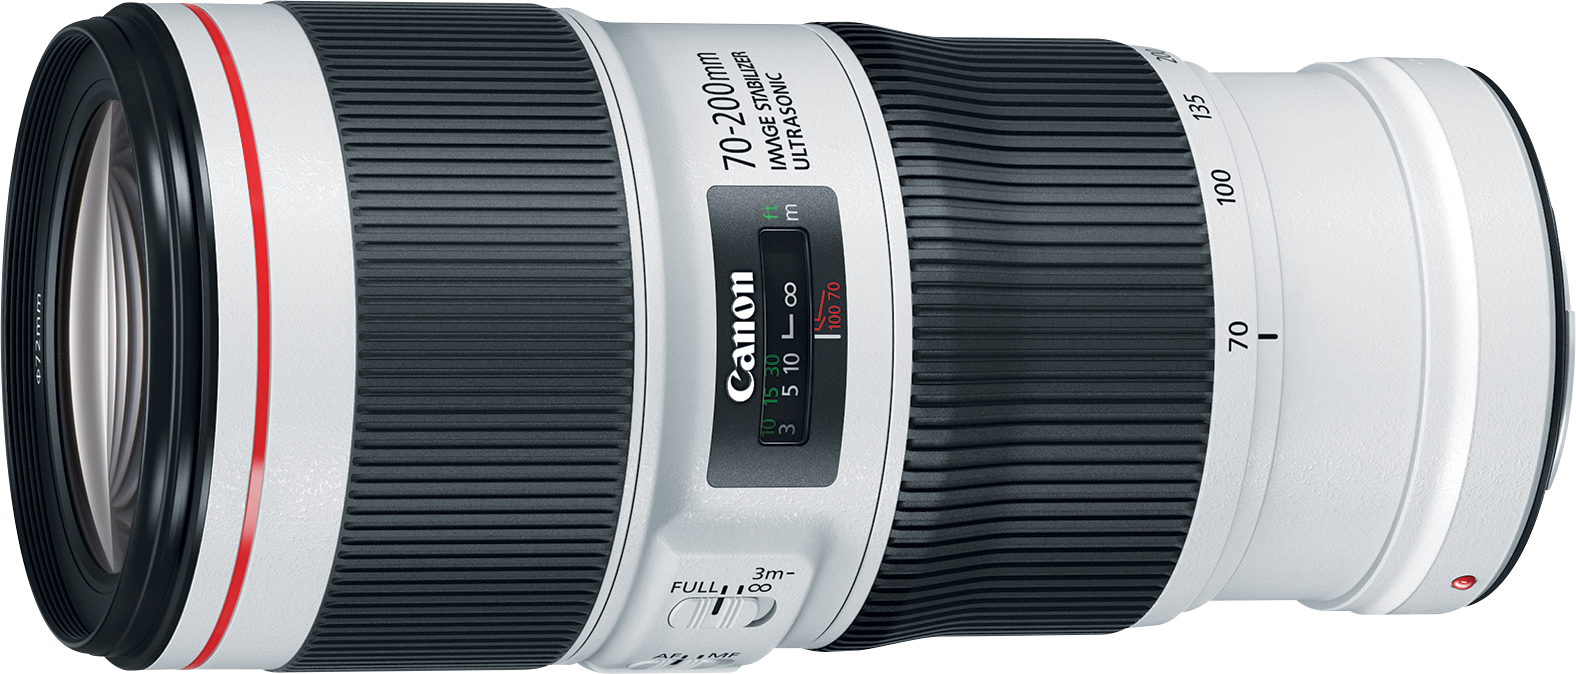 Have your say: Best zoom lens of 2018: Digital Photography Review